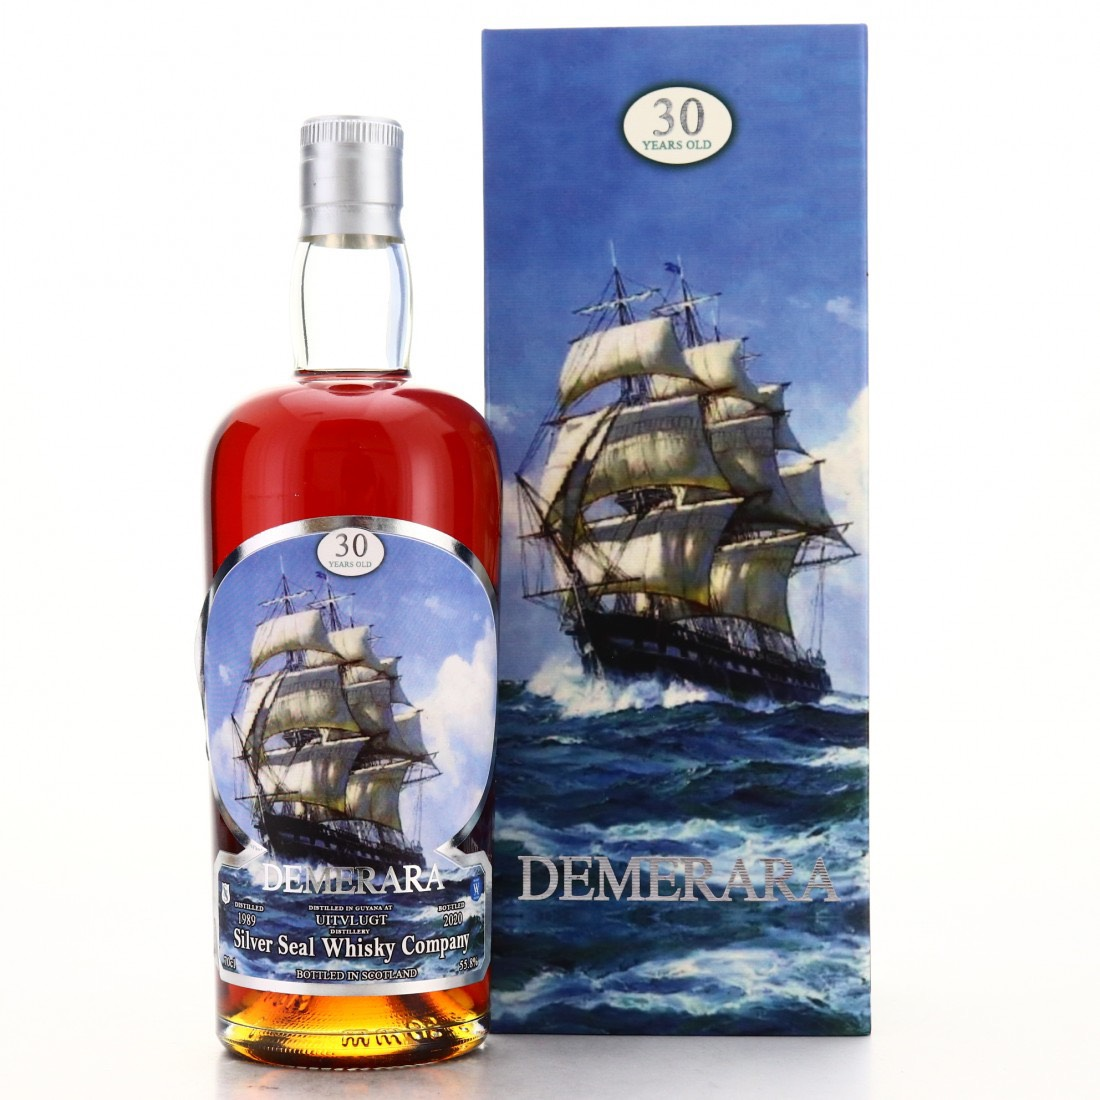 Bottle image of Demerara